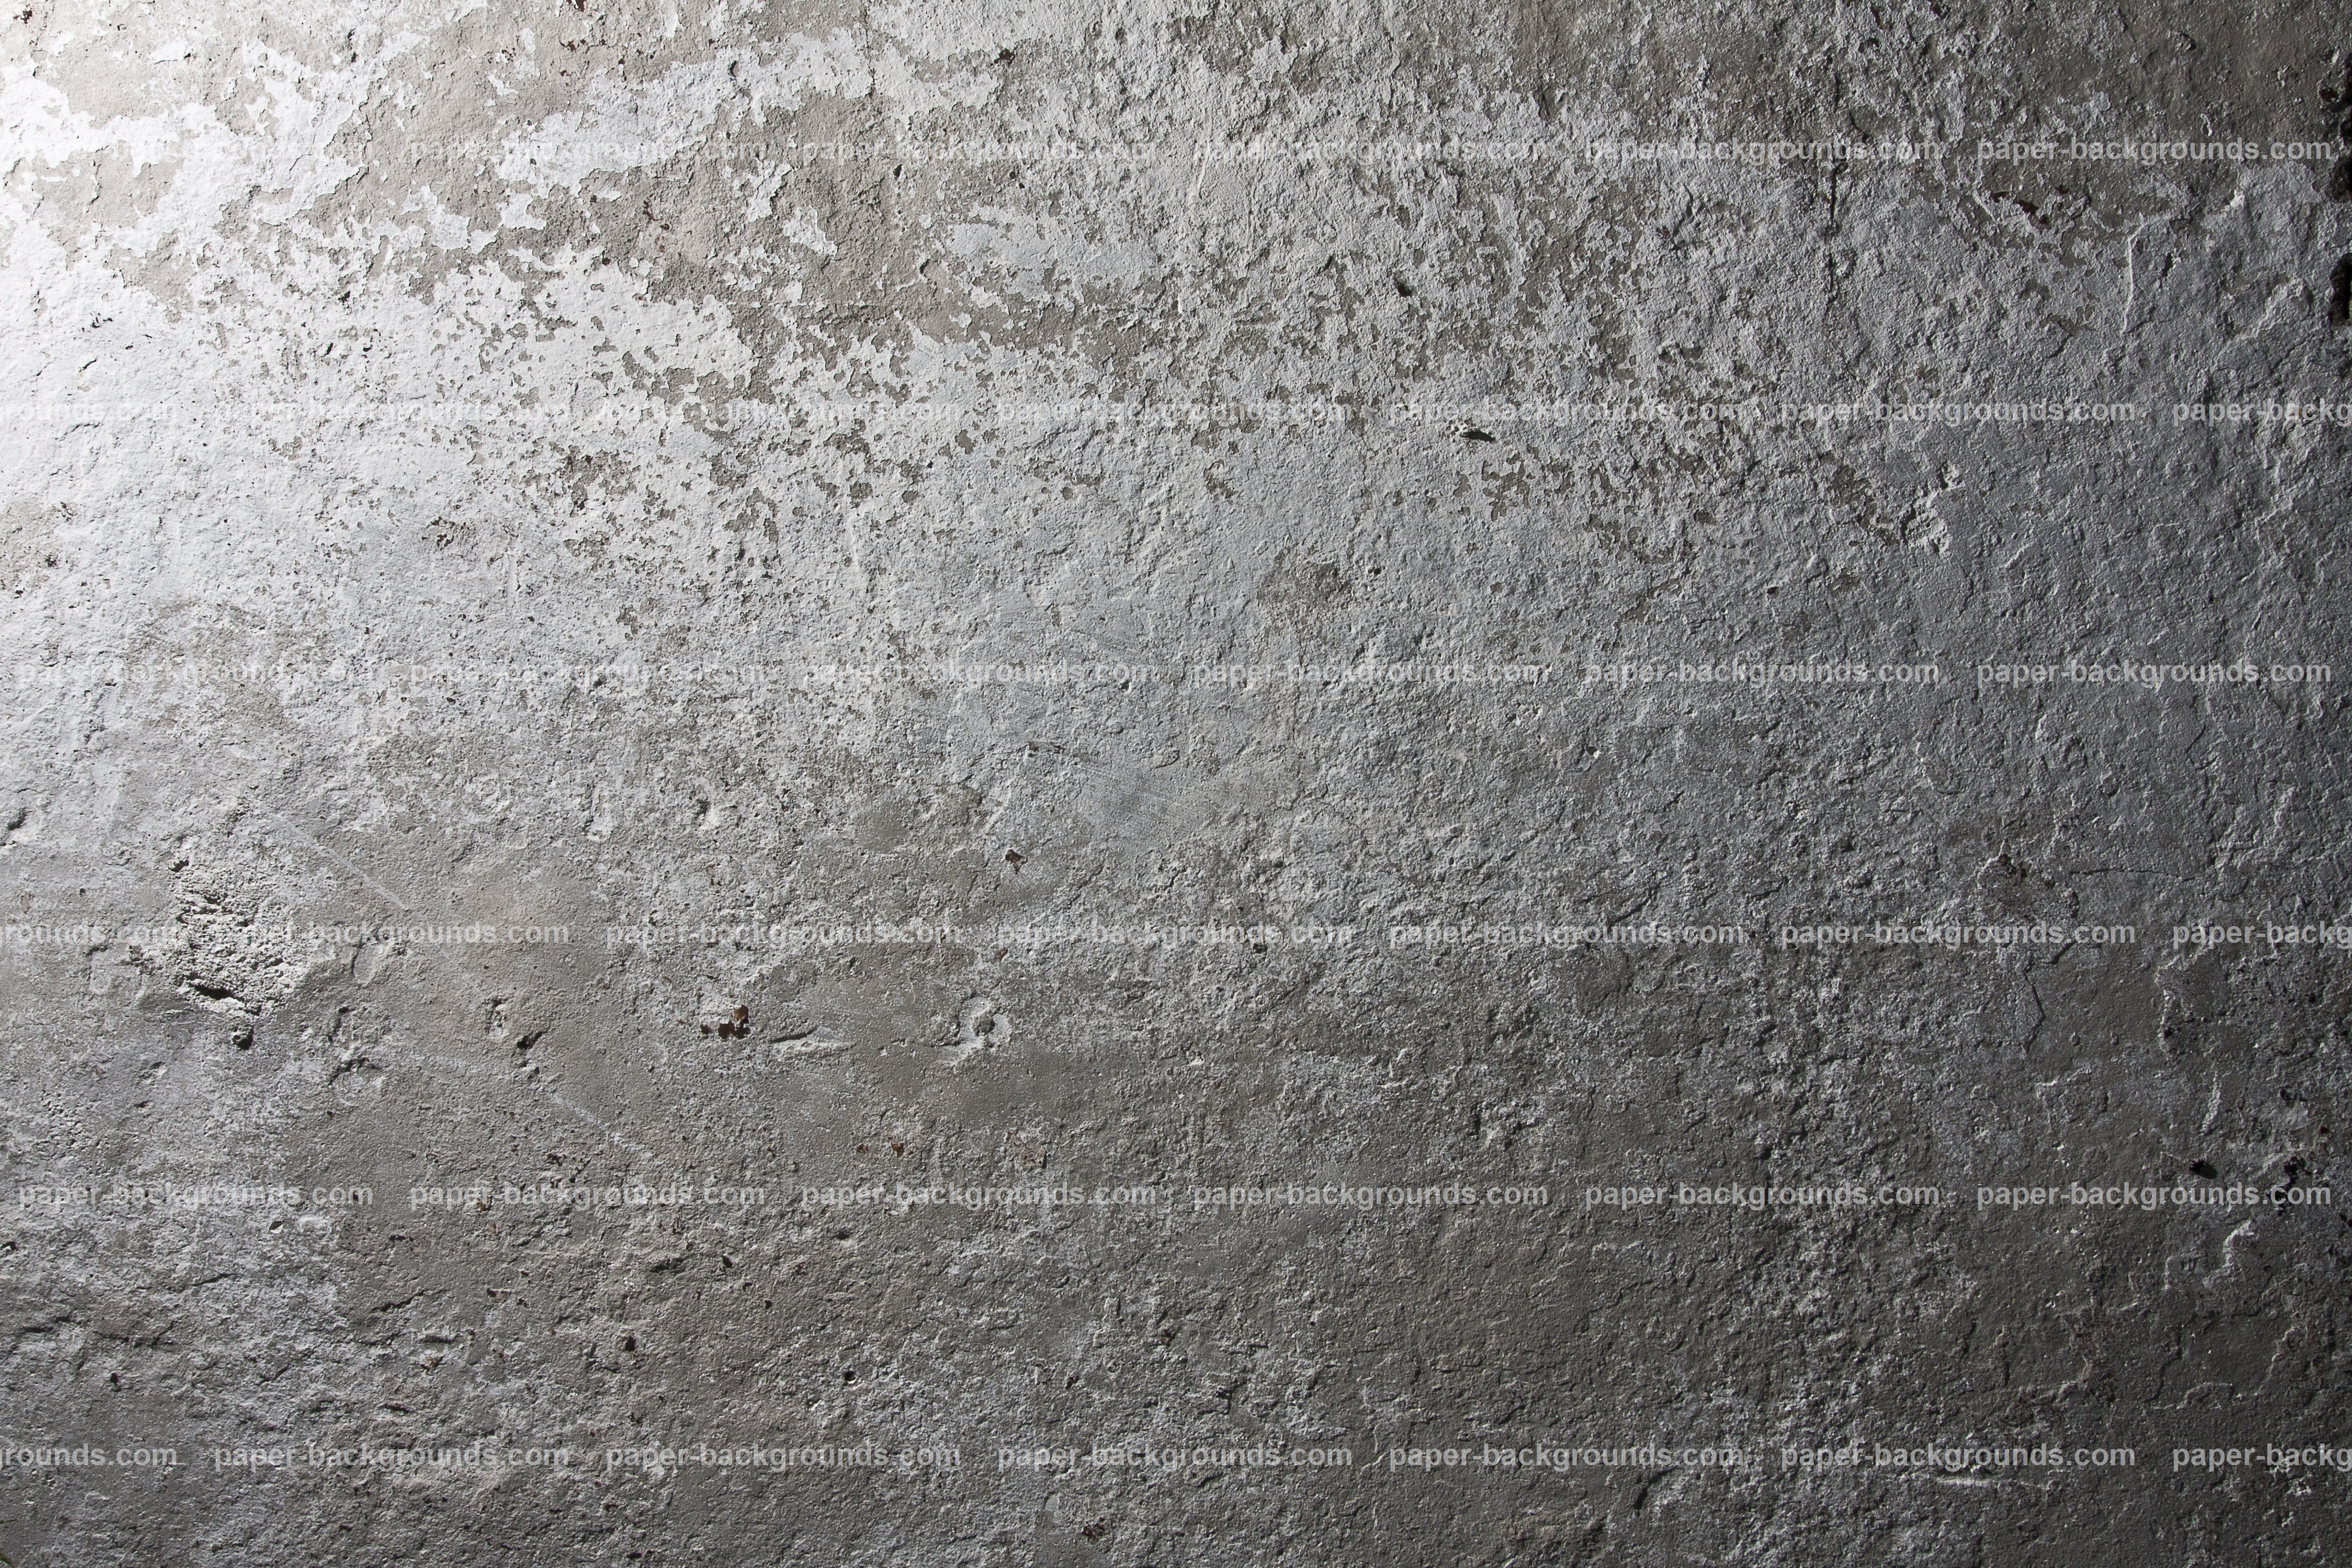 Paper Backgrounds Gray Concrete Wall Background